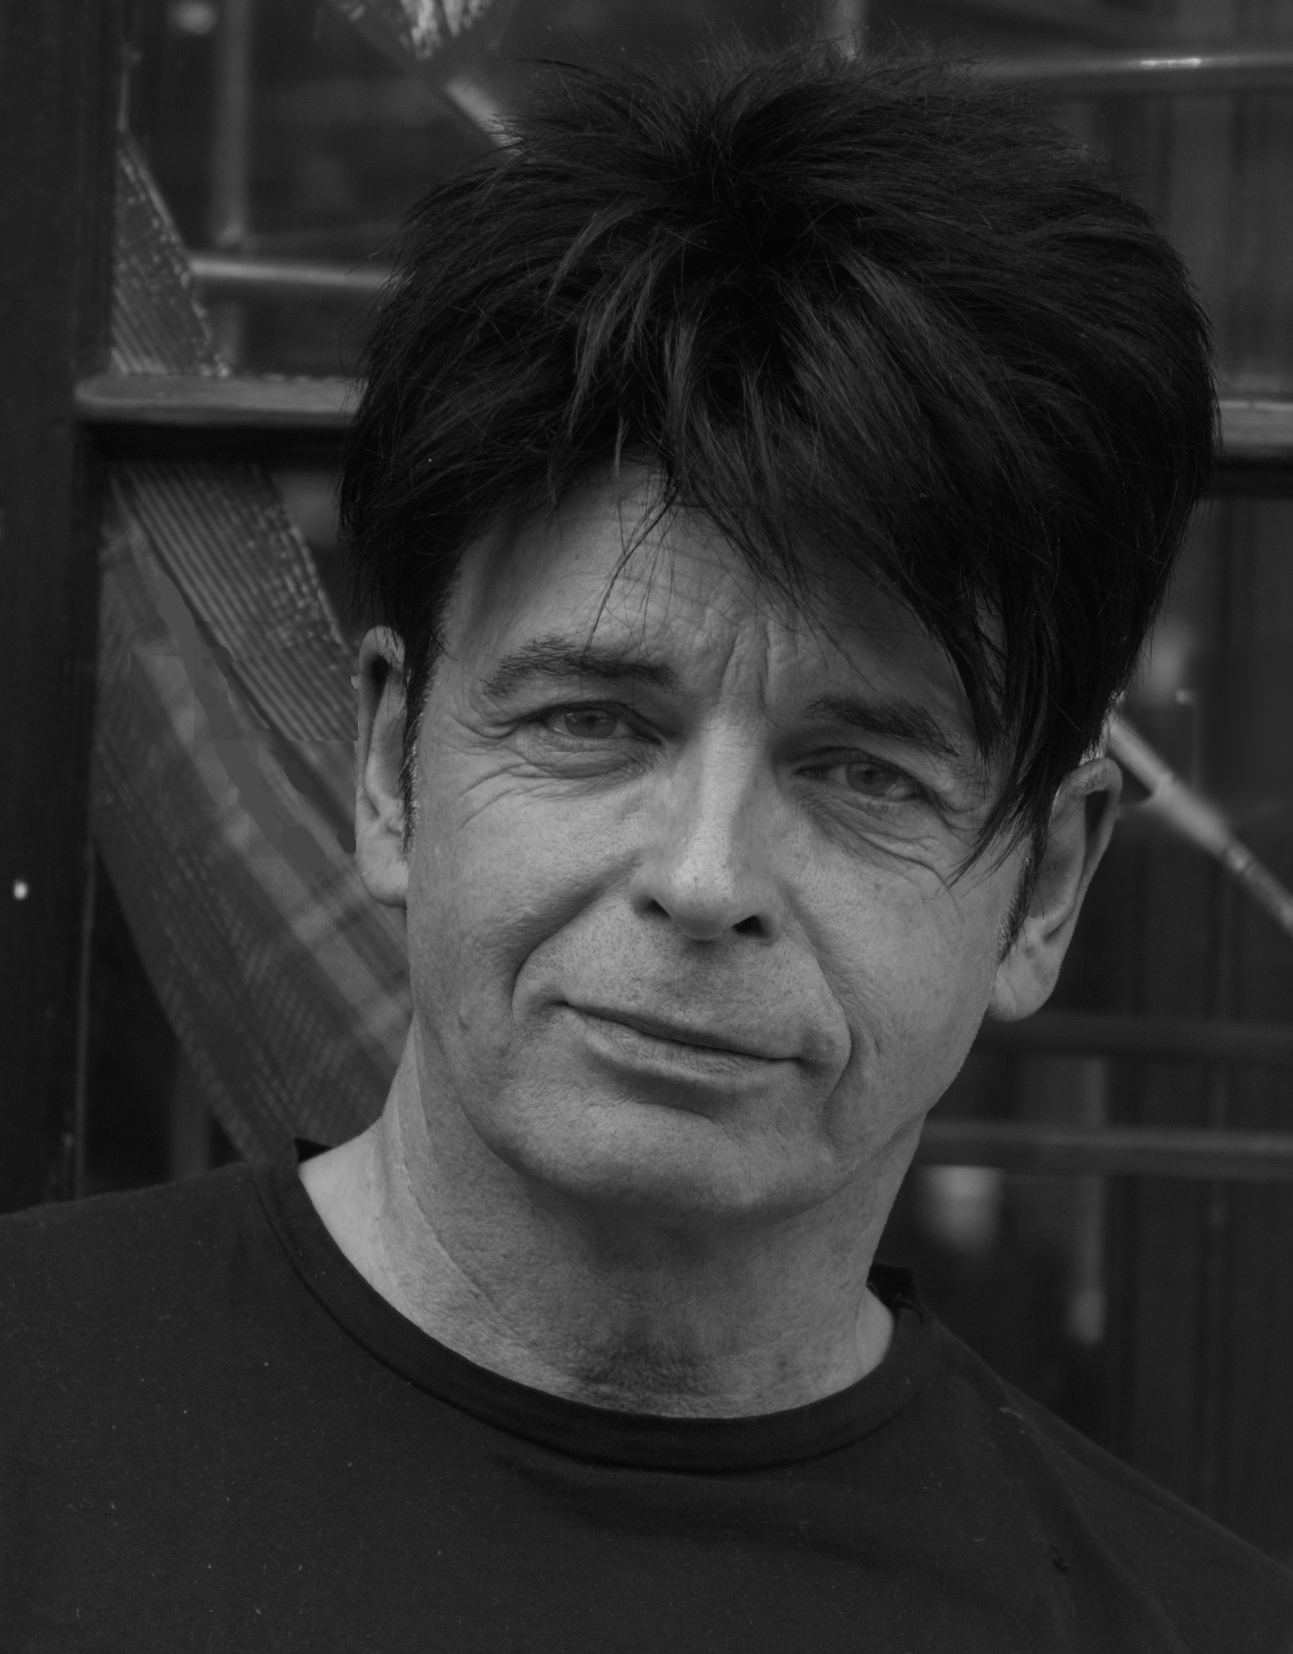 Street Portrait (for and of Gary Numan), 2018